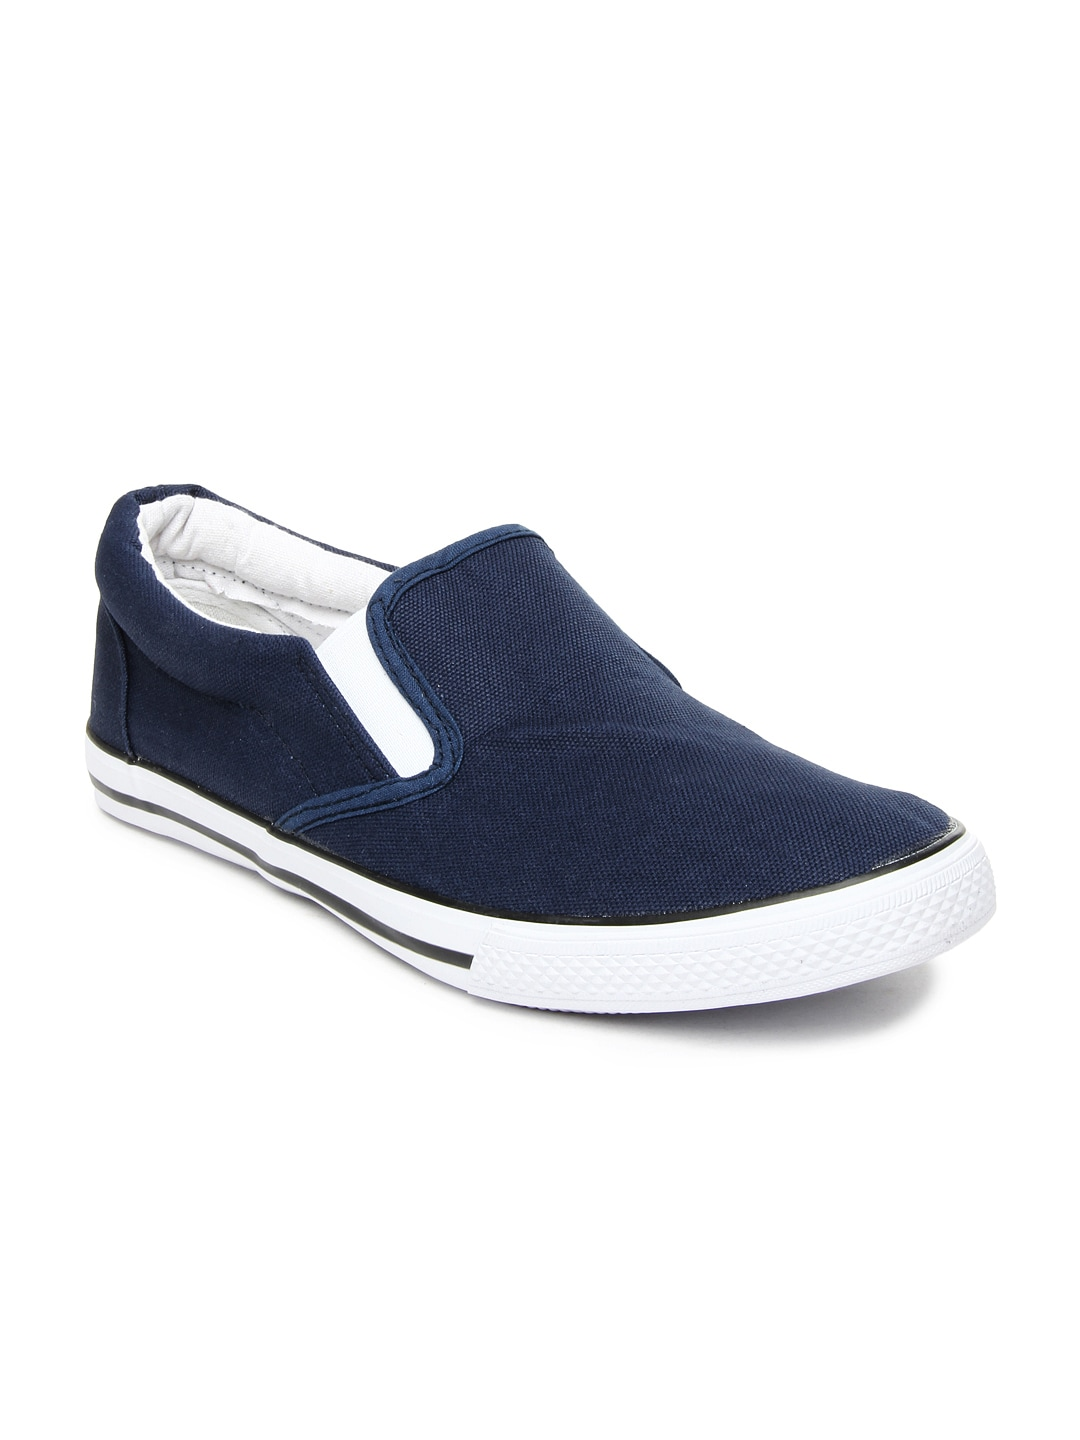 Buy Roadster Men Navy Casual Shoes - 632 - Footwear for Men - 193883